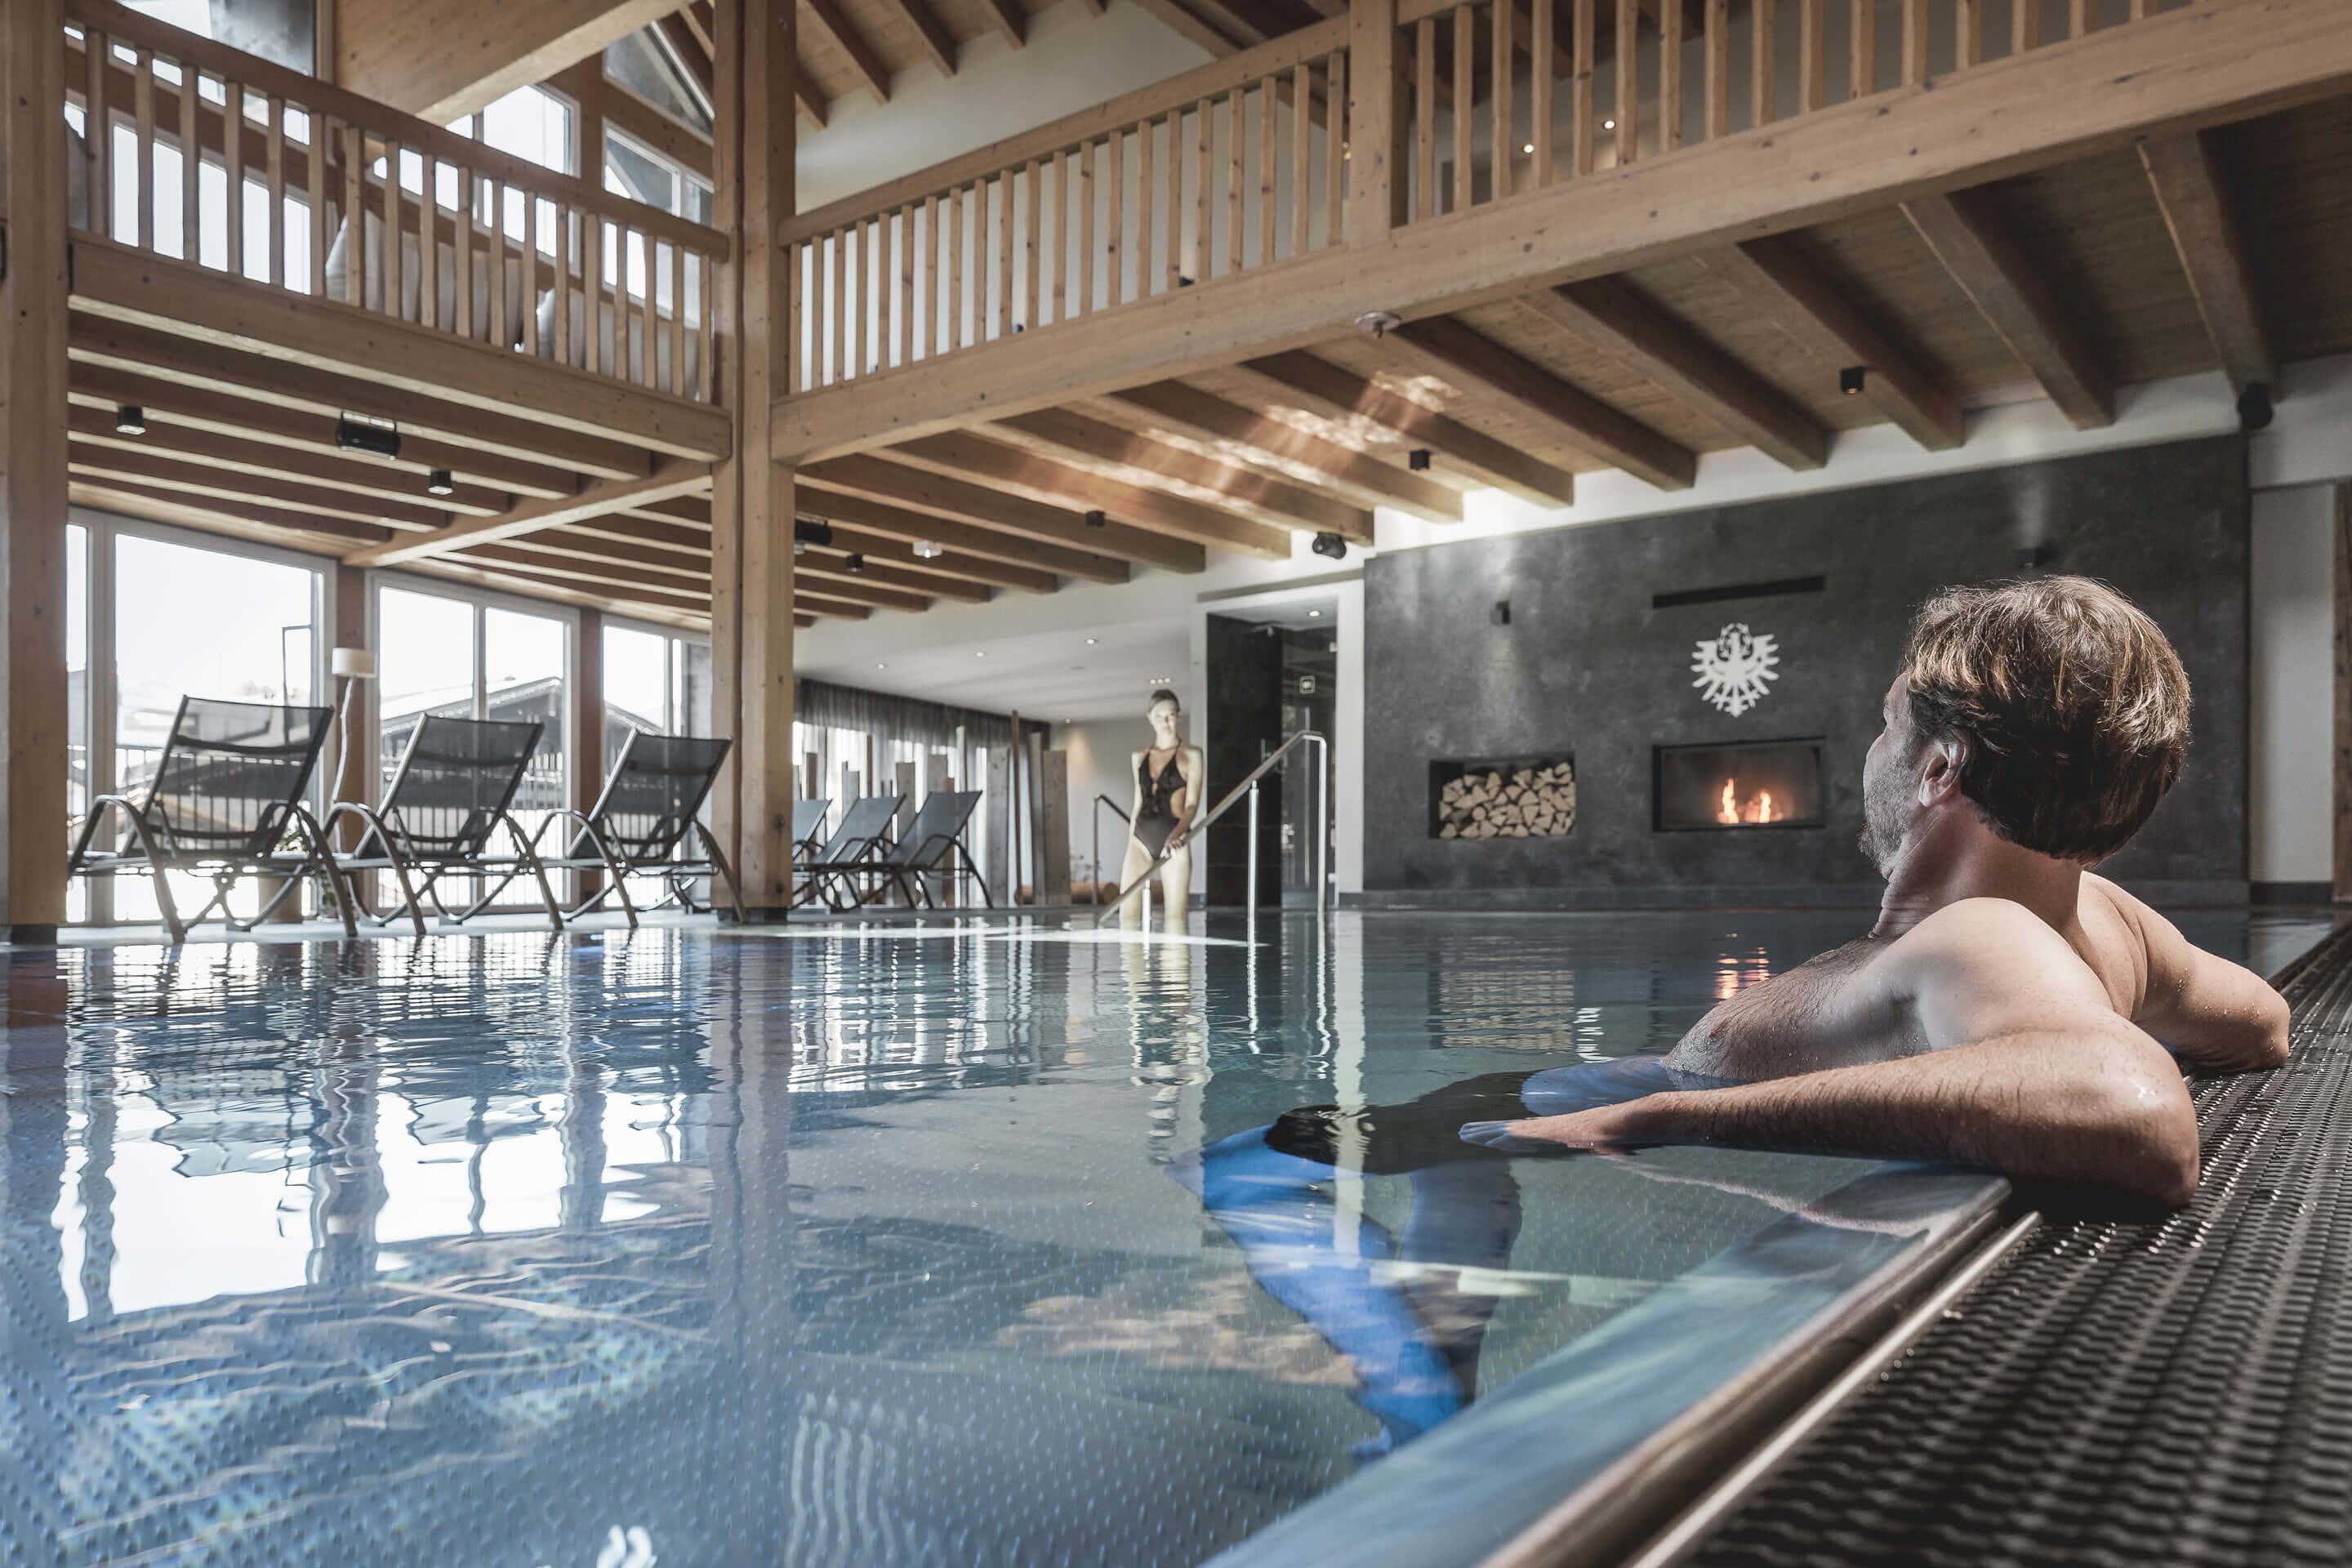 Krumers Post Hotel & SPA, das Wellnesshotel in Seefeld in Tirol